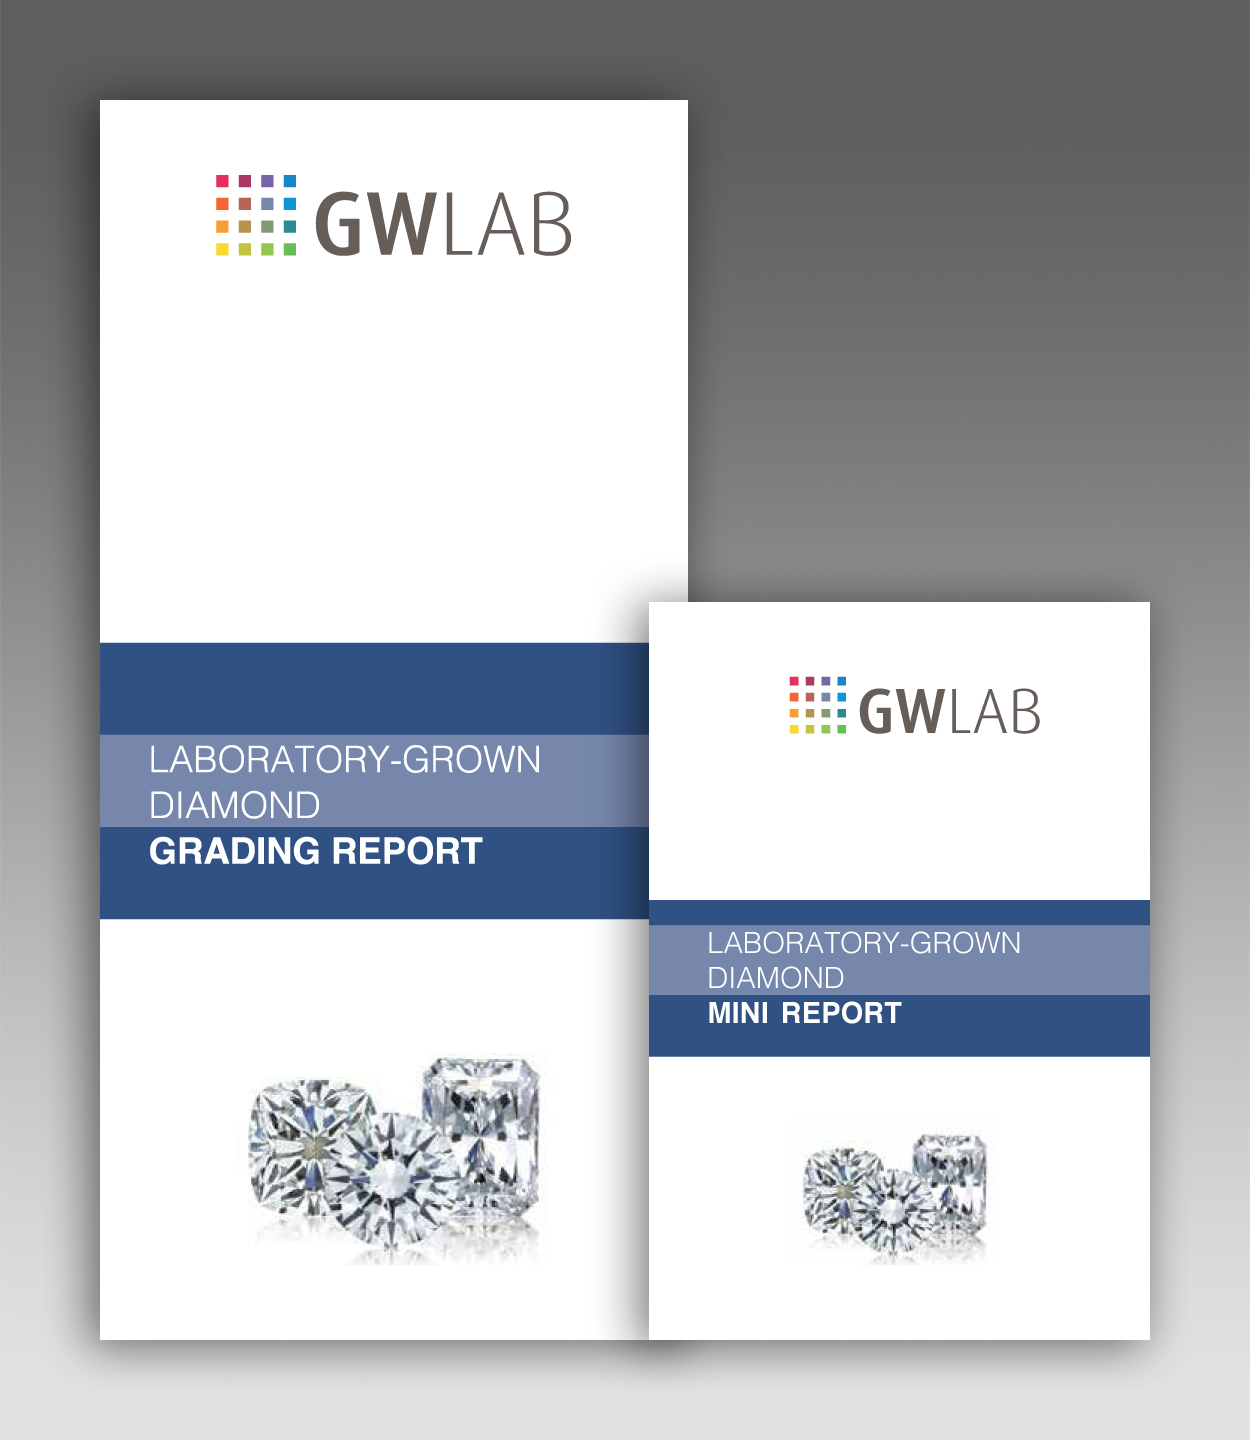 GWLAB Laboratory-Grown Diamond Grading Report - Outer Cover